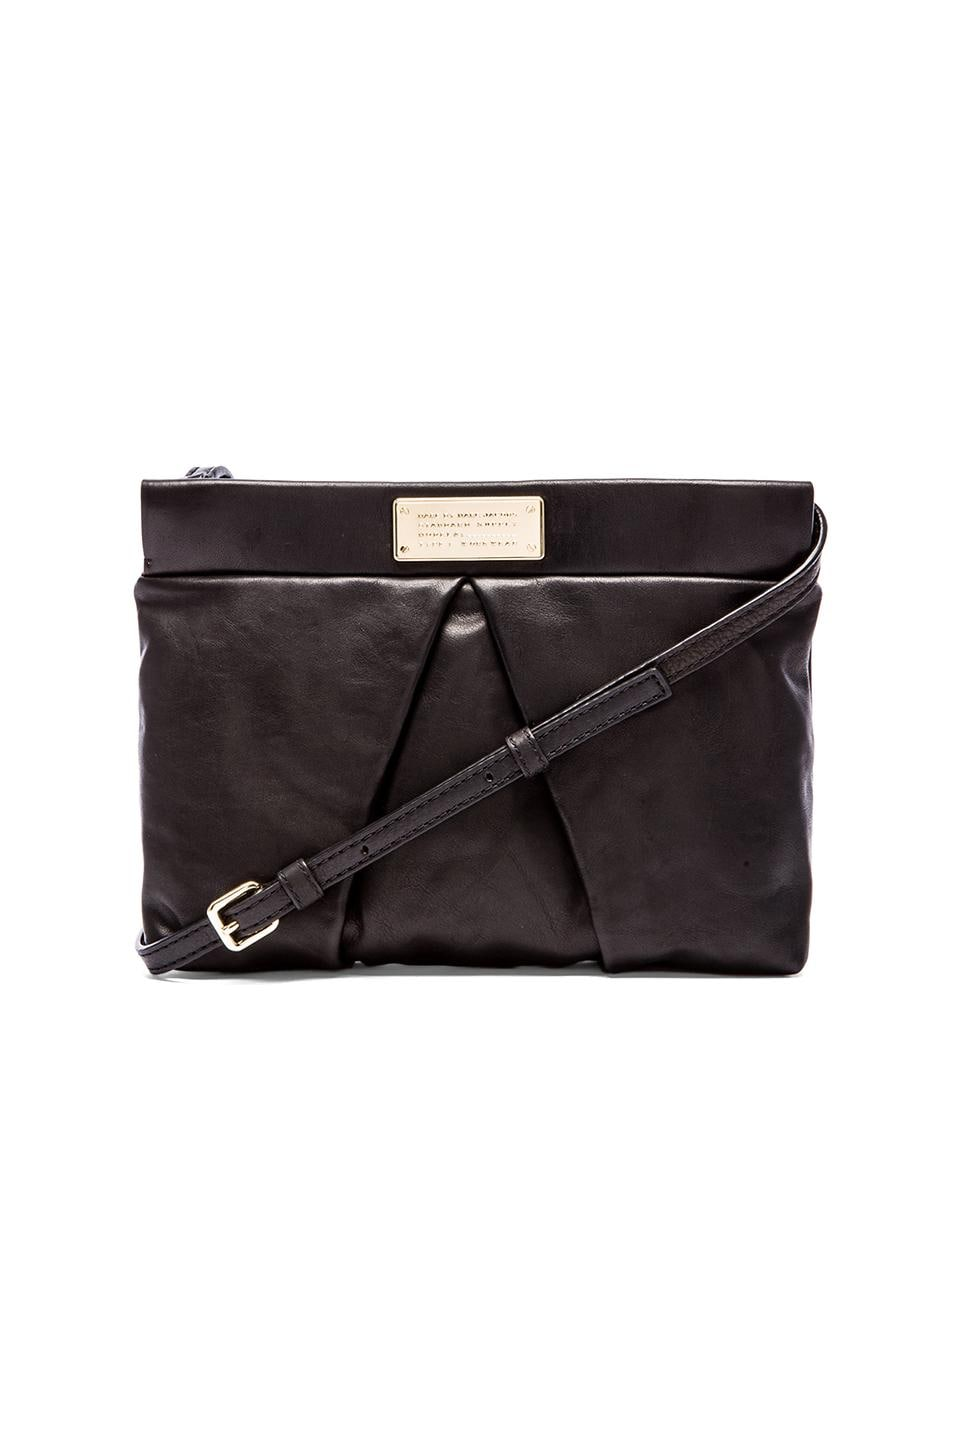 Marc by Marc Jacobs Marchive Percy Crossbody in Black